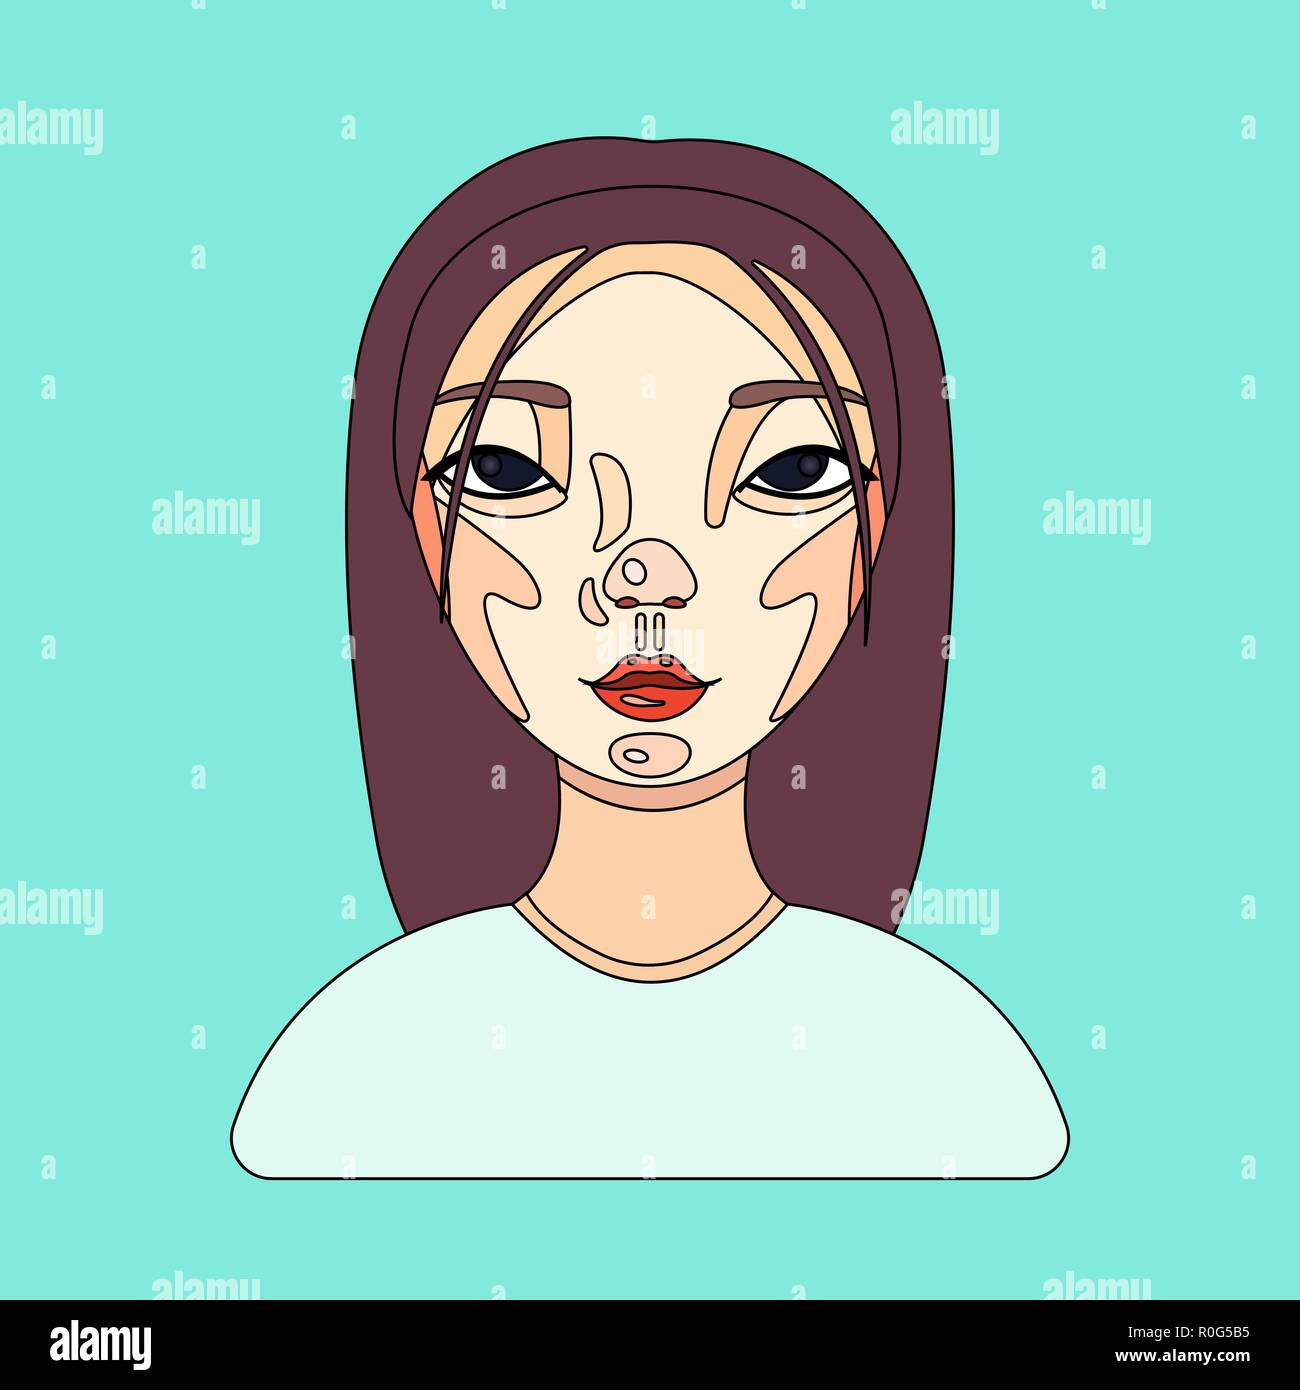 Female user avatar of businesswoman  Icon of cute girl face  Flat